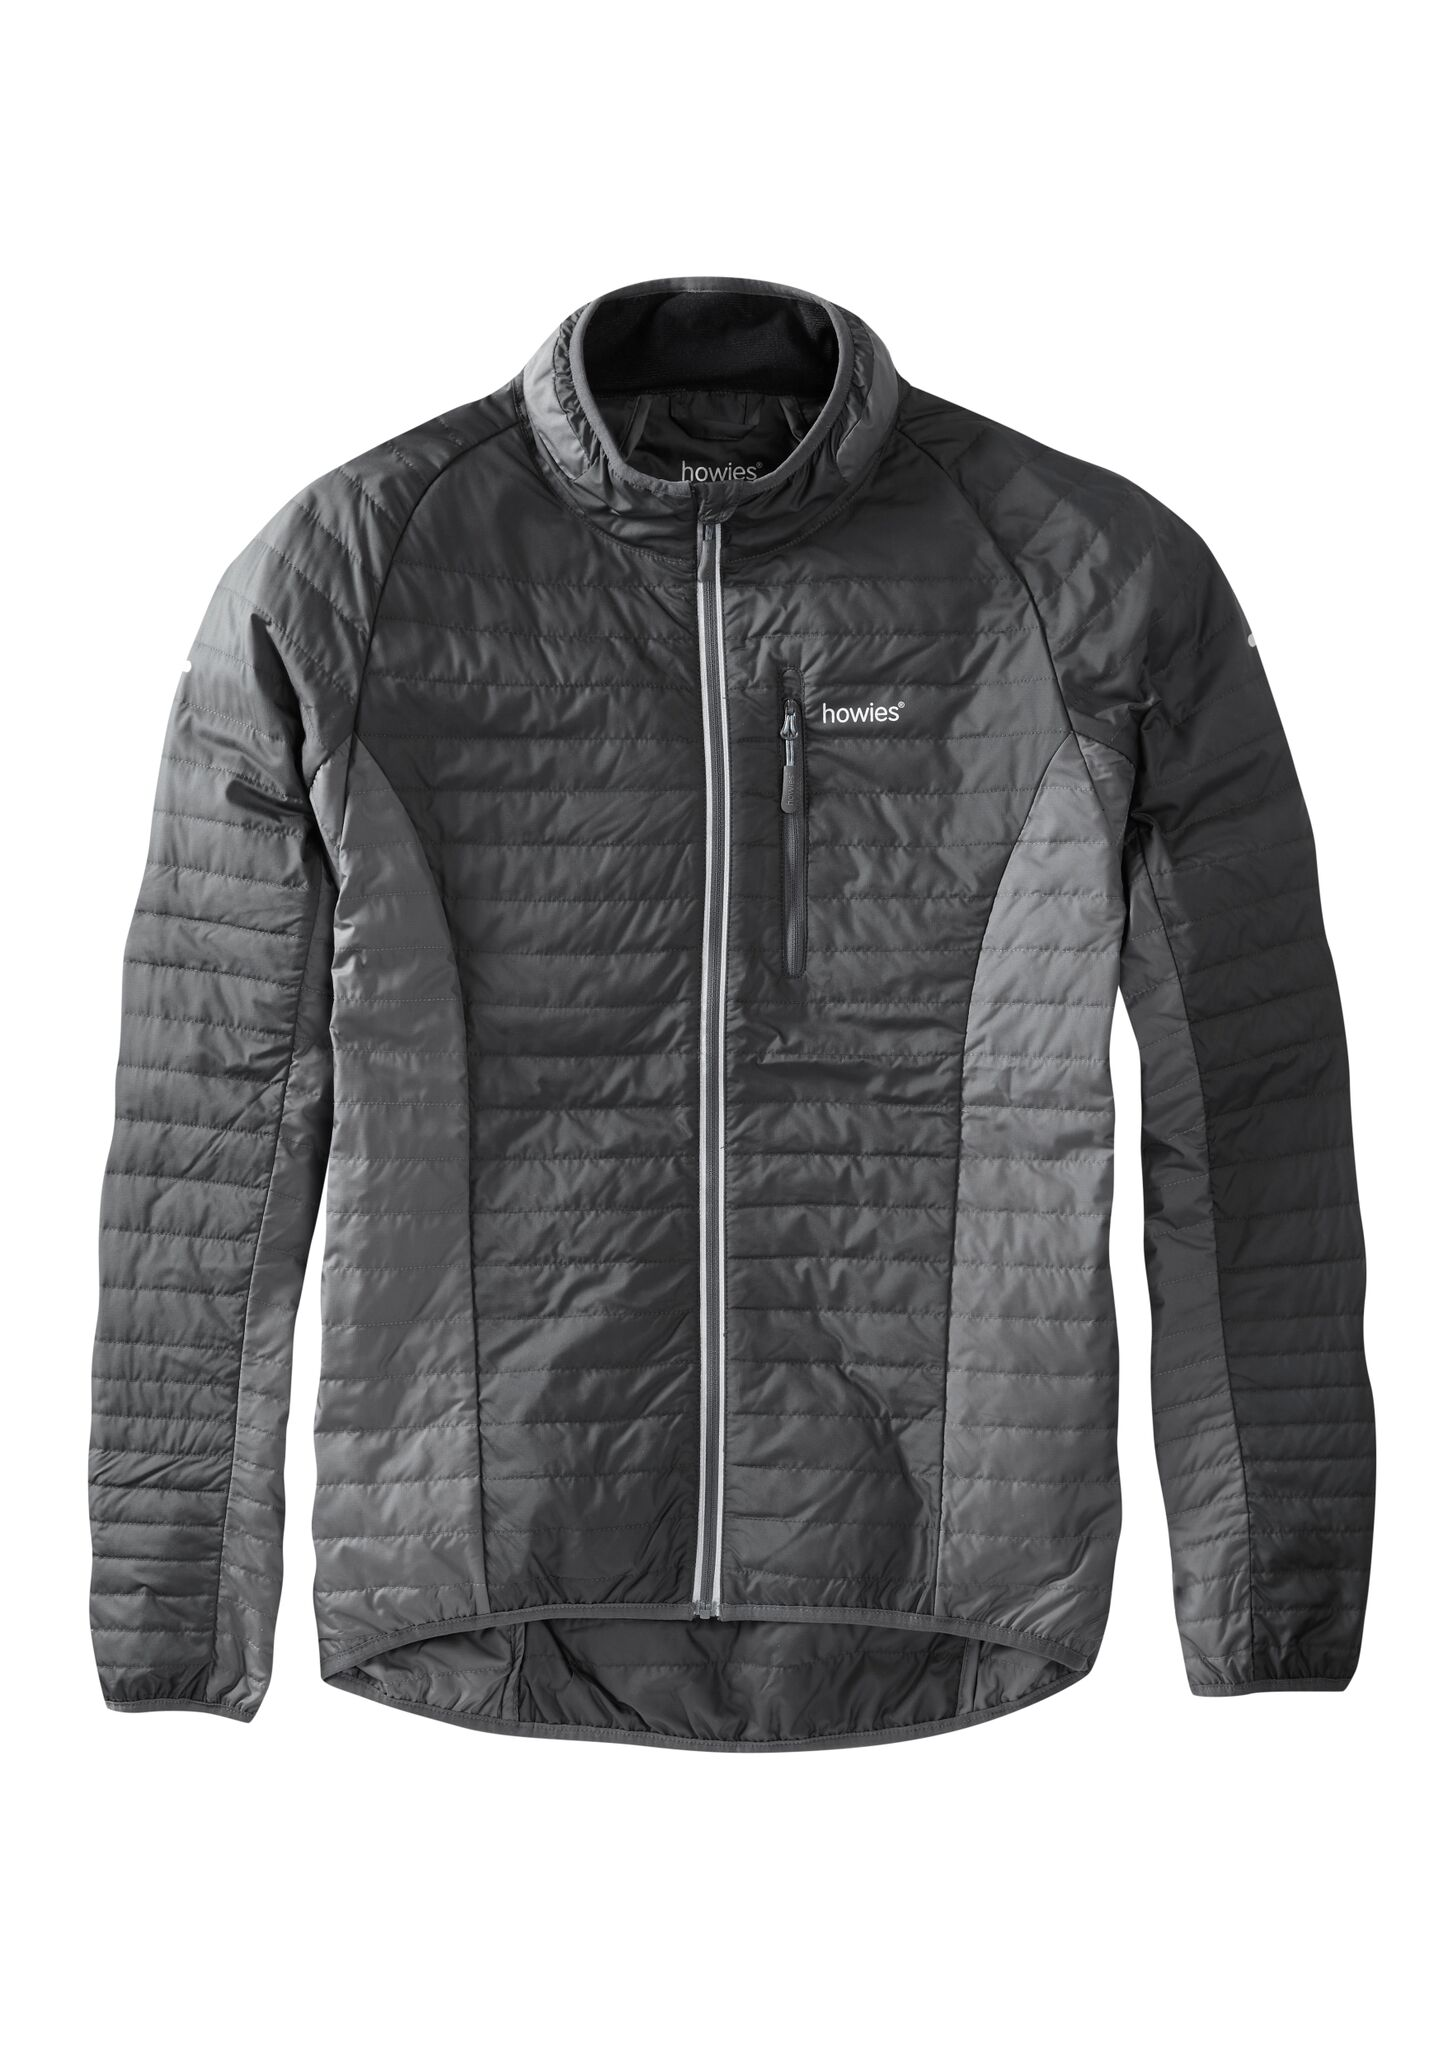 howies Bryant Wadded Recycled Poly Jacket | Jackets